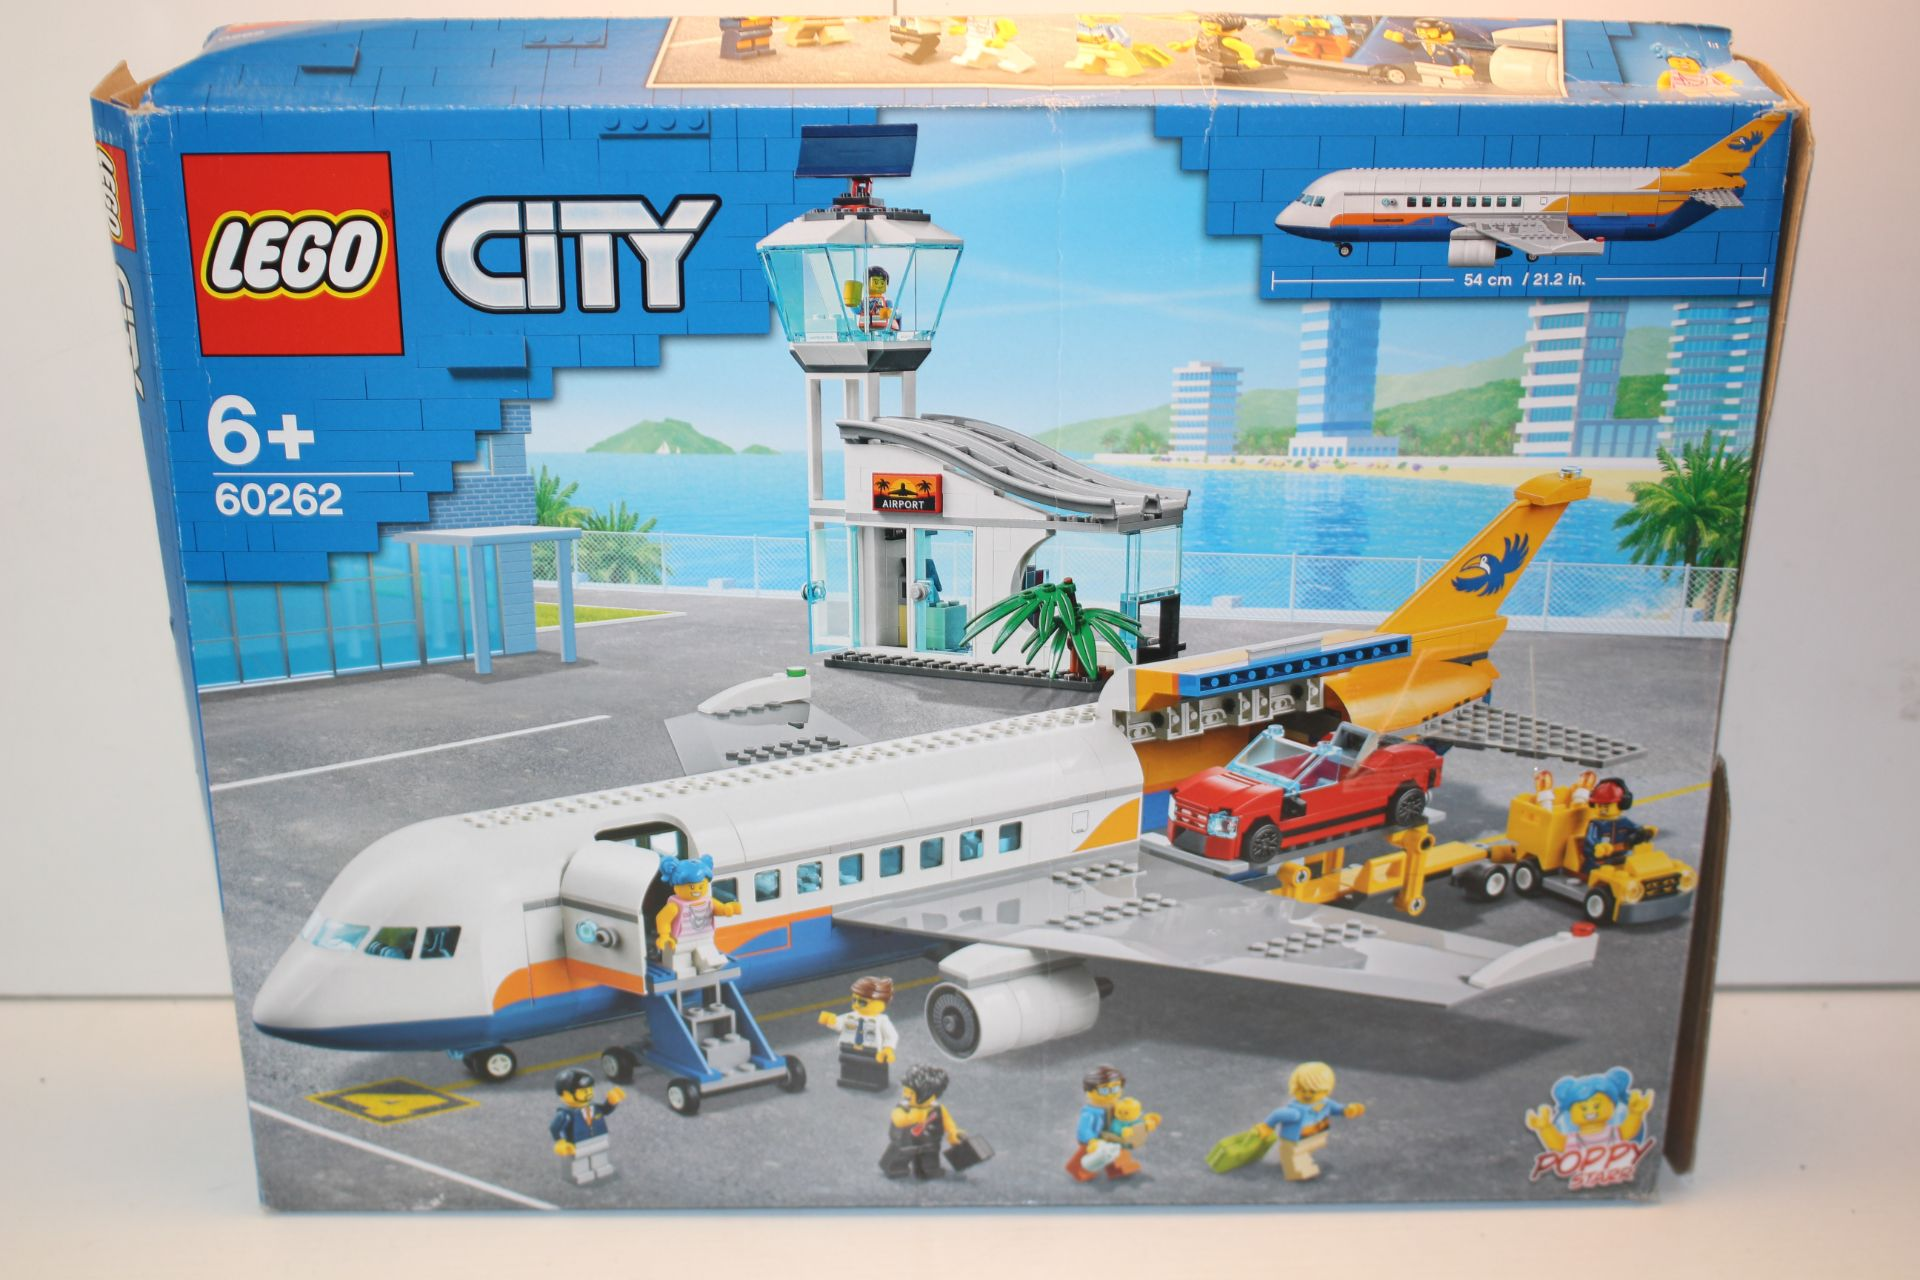 BOXED LEGO CITY AIRPORT 60262 RRP £59.99Condition ReportAppraisal Available on Request- All Items